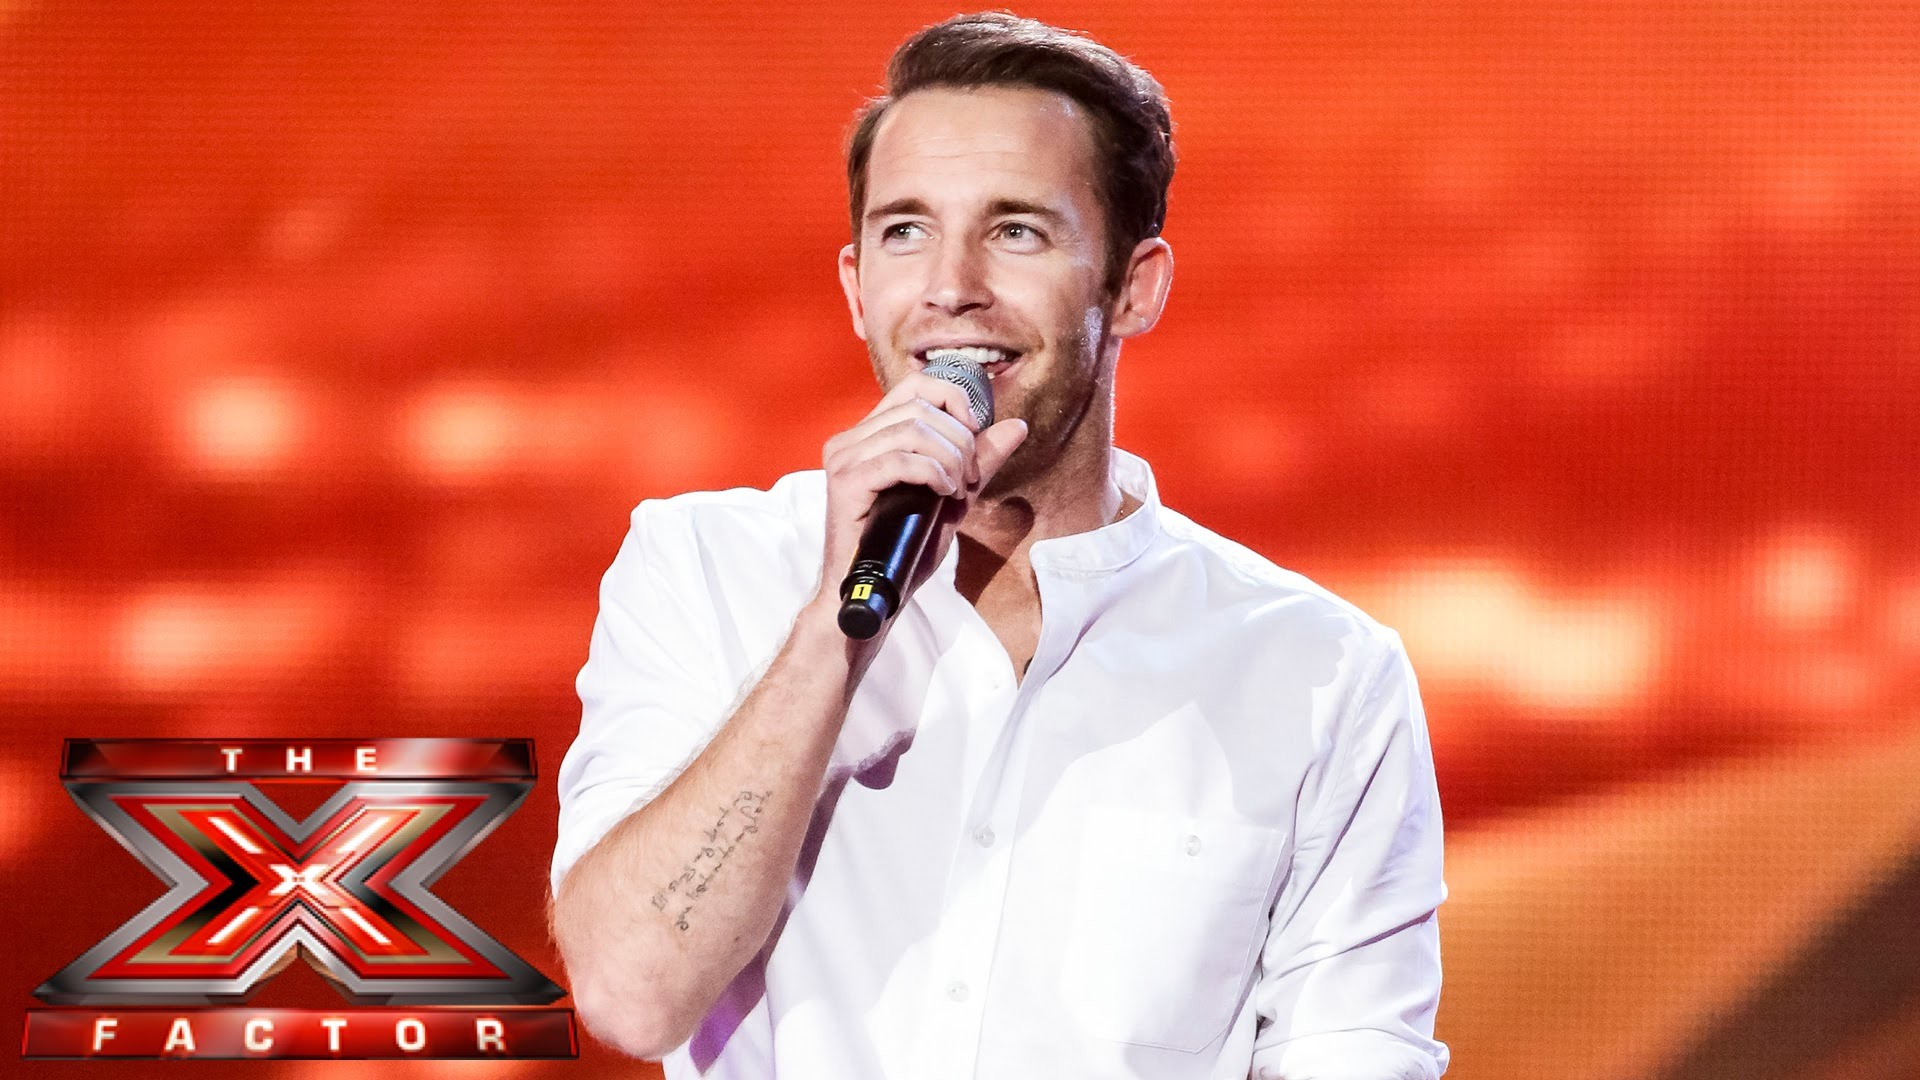 X Factor 2014: Jay James has lost his voice ahead of tonight's show!